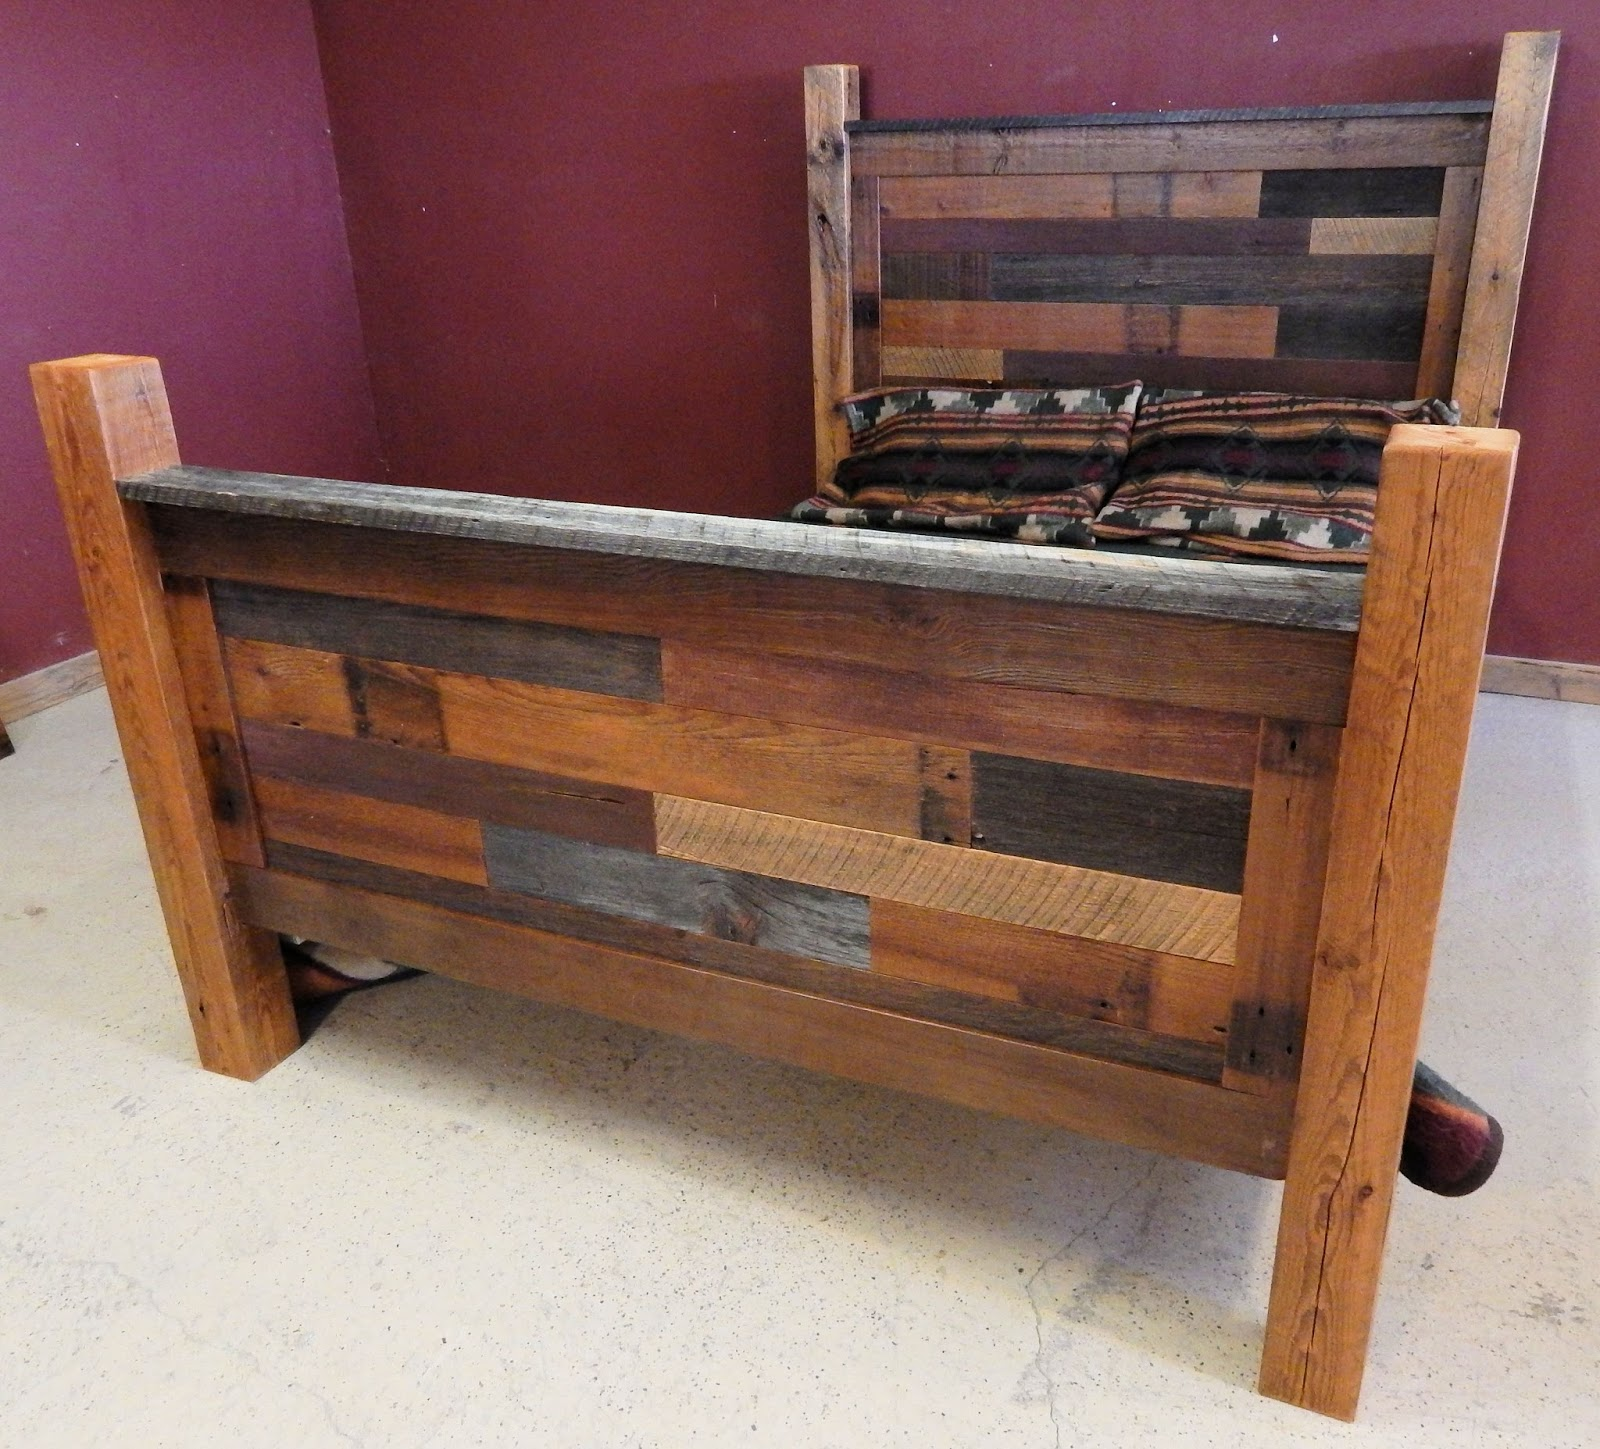 Log furniture barnwood furniture rustic furniture for Furniture barn